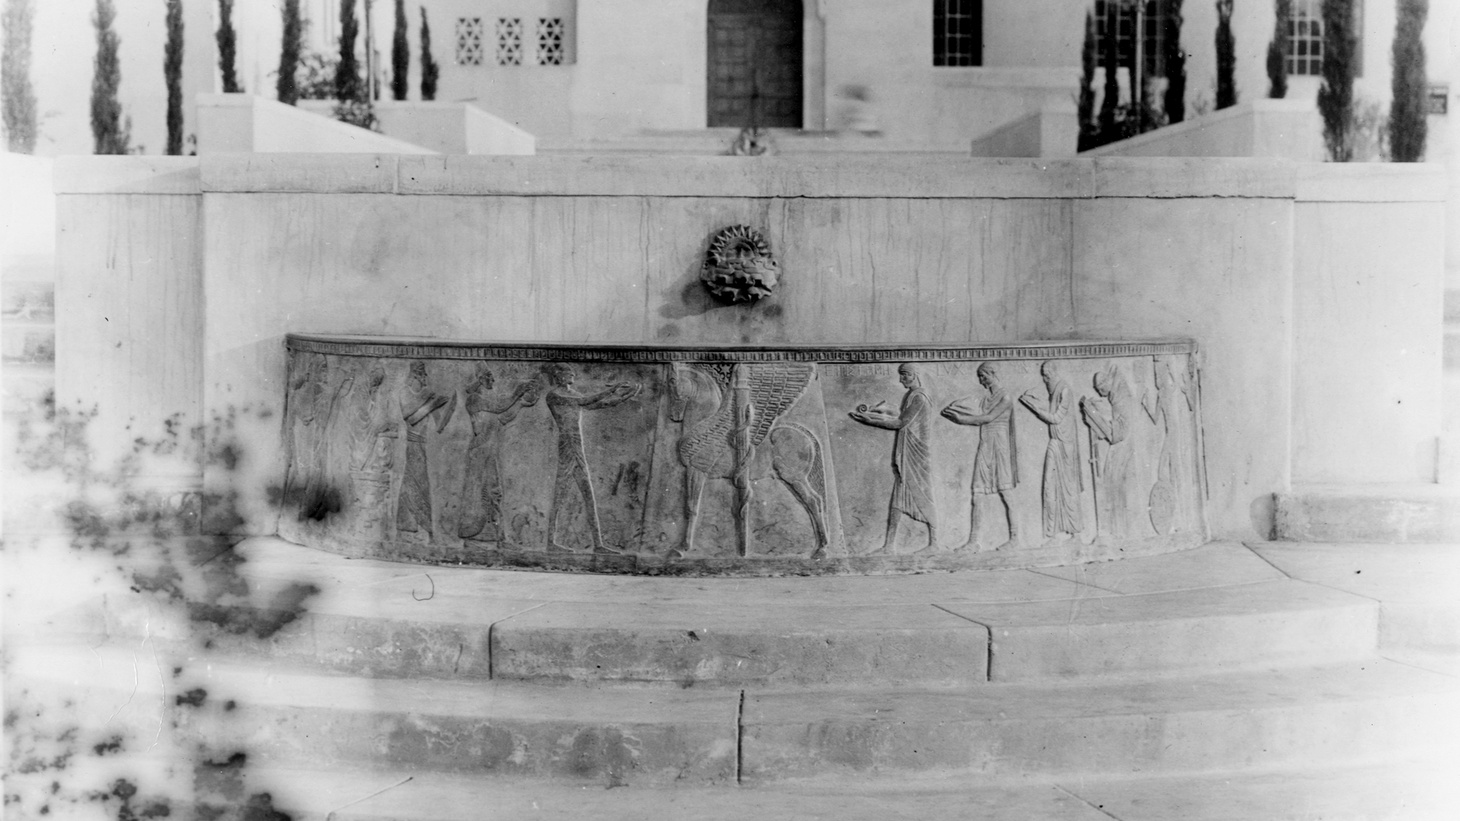 View of the Well of Scribes statue, circa 1926.